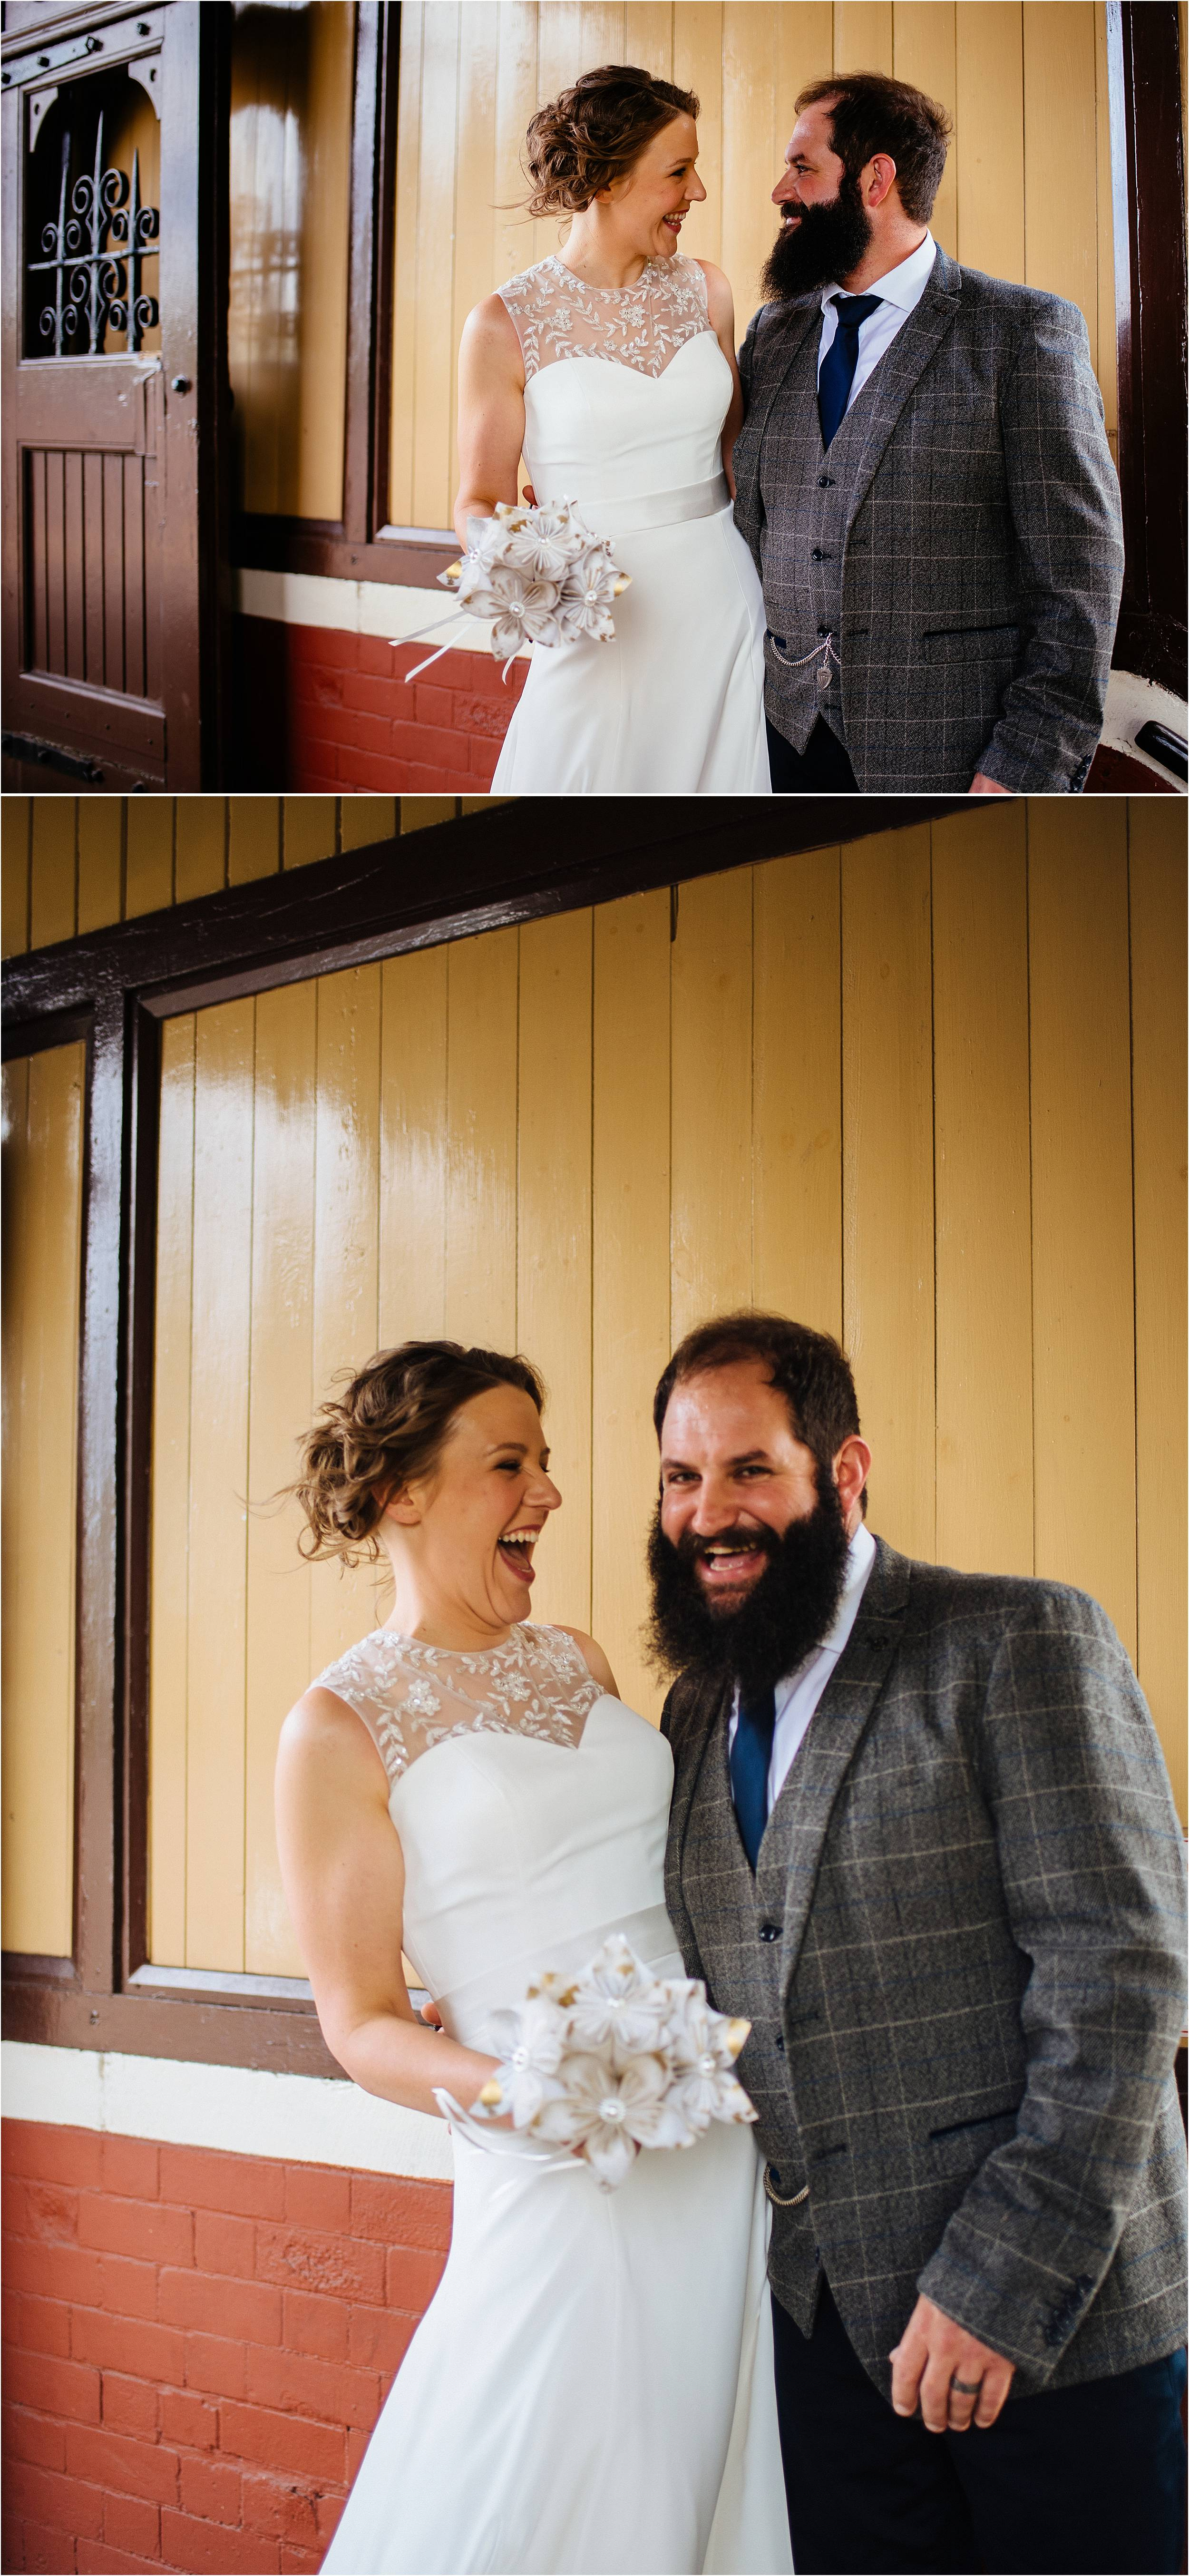 The Great Central Railway Wedding Photography_0053.jpg